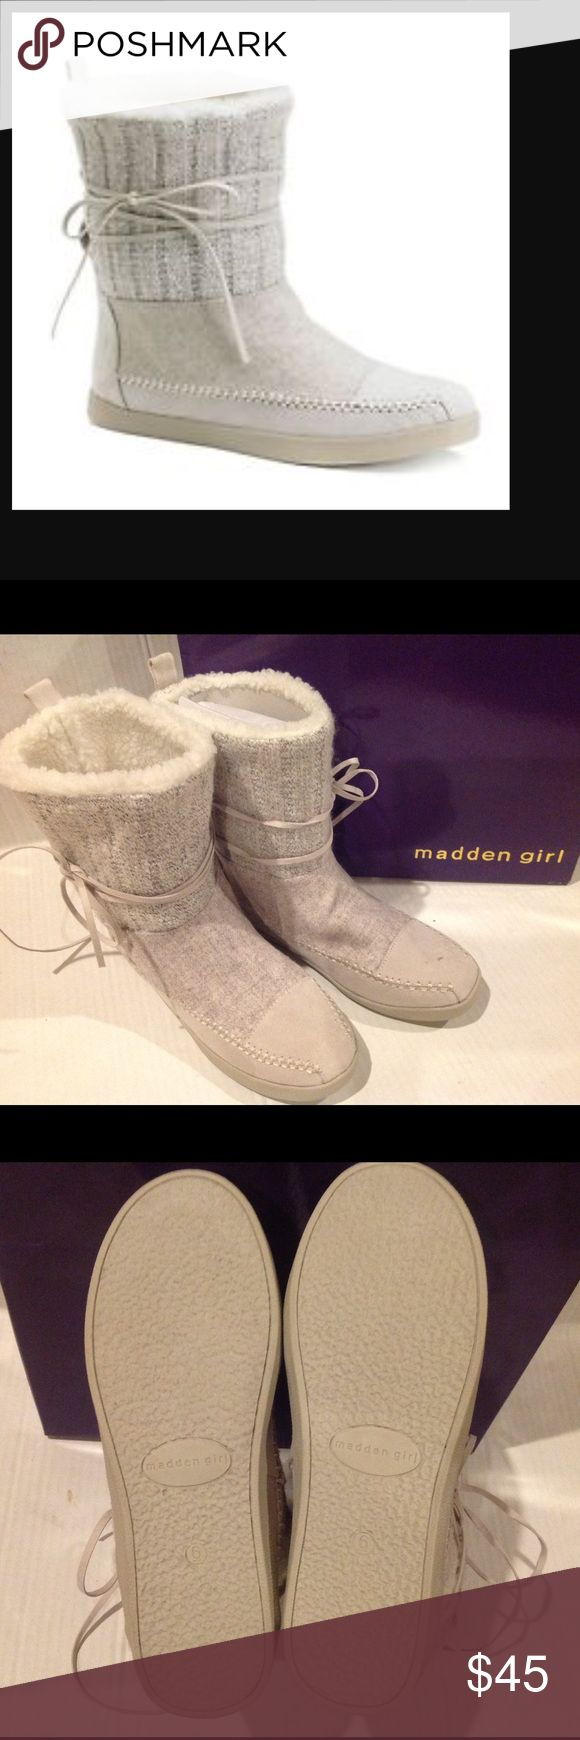 🆕MADDEN GIRL WOMENS WHITE CREAM BOOTS (Sz 6) Madden Girl Women's white cream Multi Microfiver JACKMEN boots. It has a solid boot pattern. The material is textile upper lining , faux fur collar.BRAND MEW WITH TAG AND COMES IN ITS ORIGINAL BOX. Madden Girl Shoes